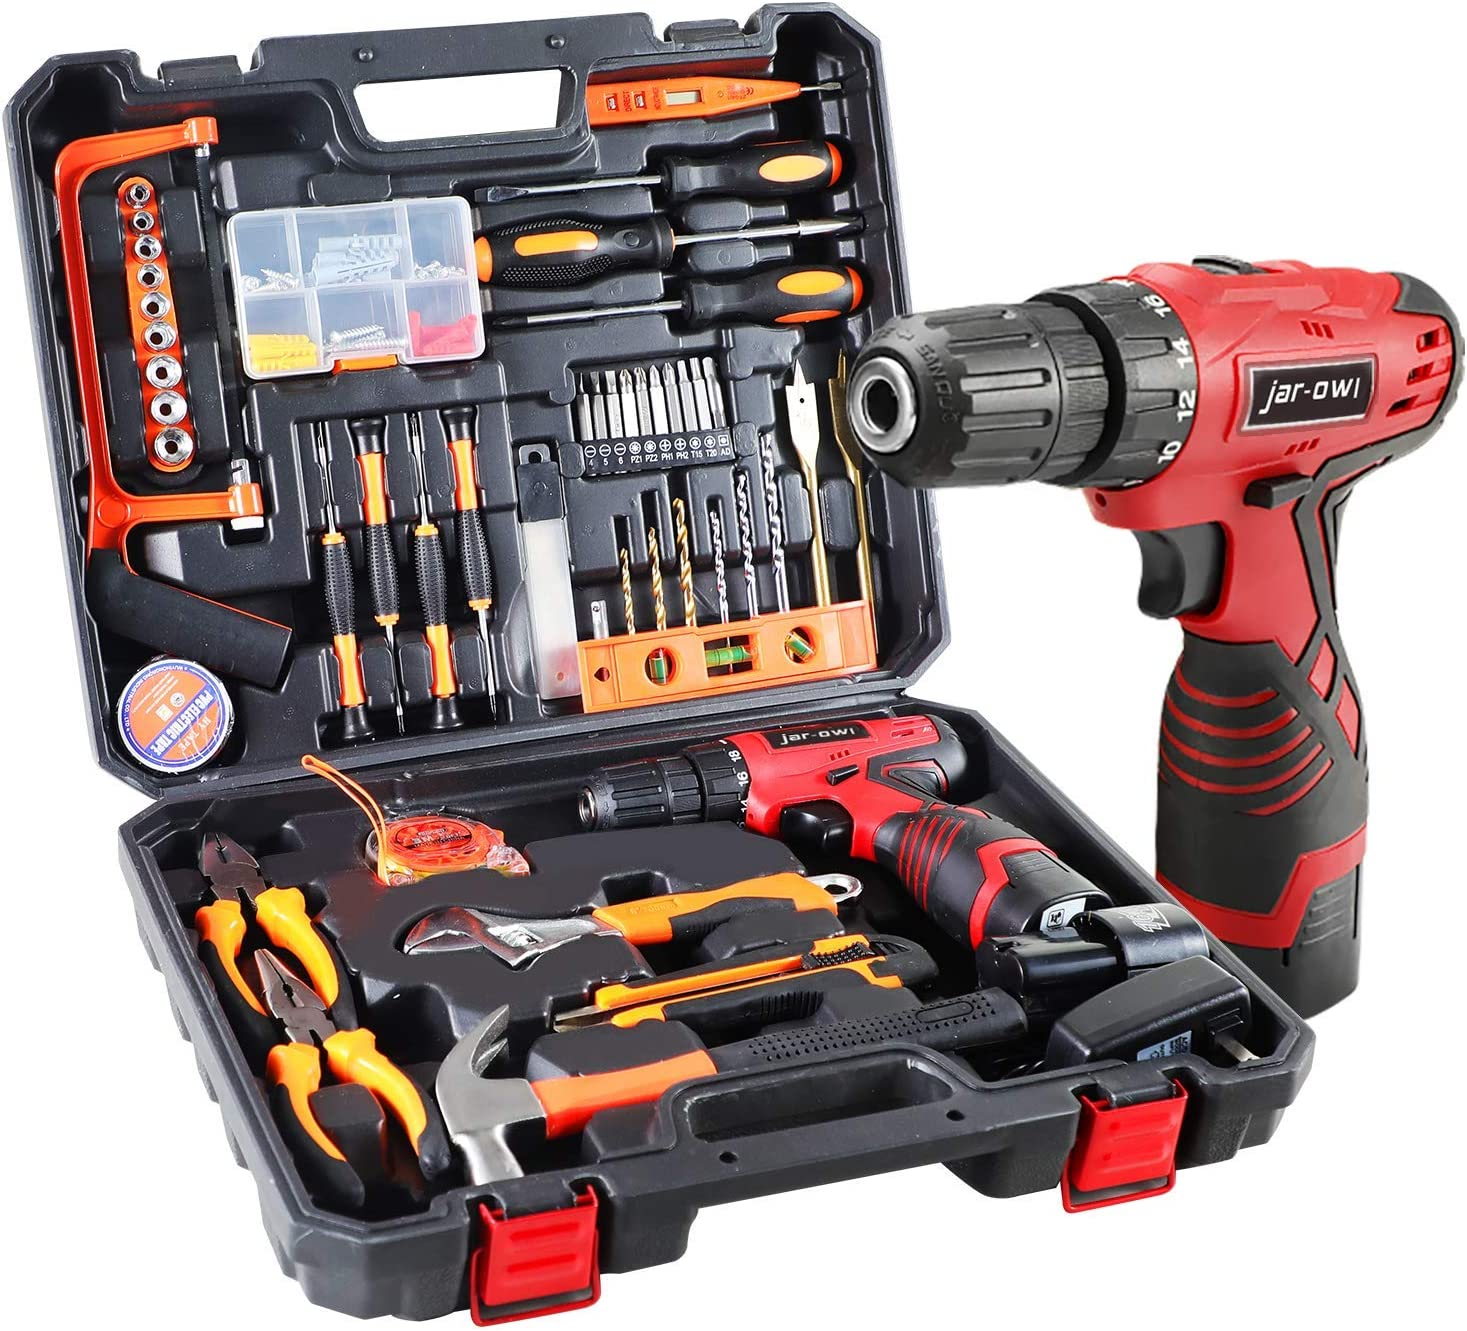 108 Piece Power Tool Combo Kits with 16.8V Cordless Drill, Household Tools Set with DIY Hand Tool Kits for Garden Office Home Repair Maintain-Black/Red